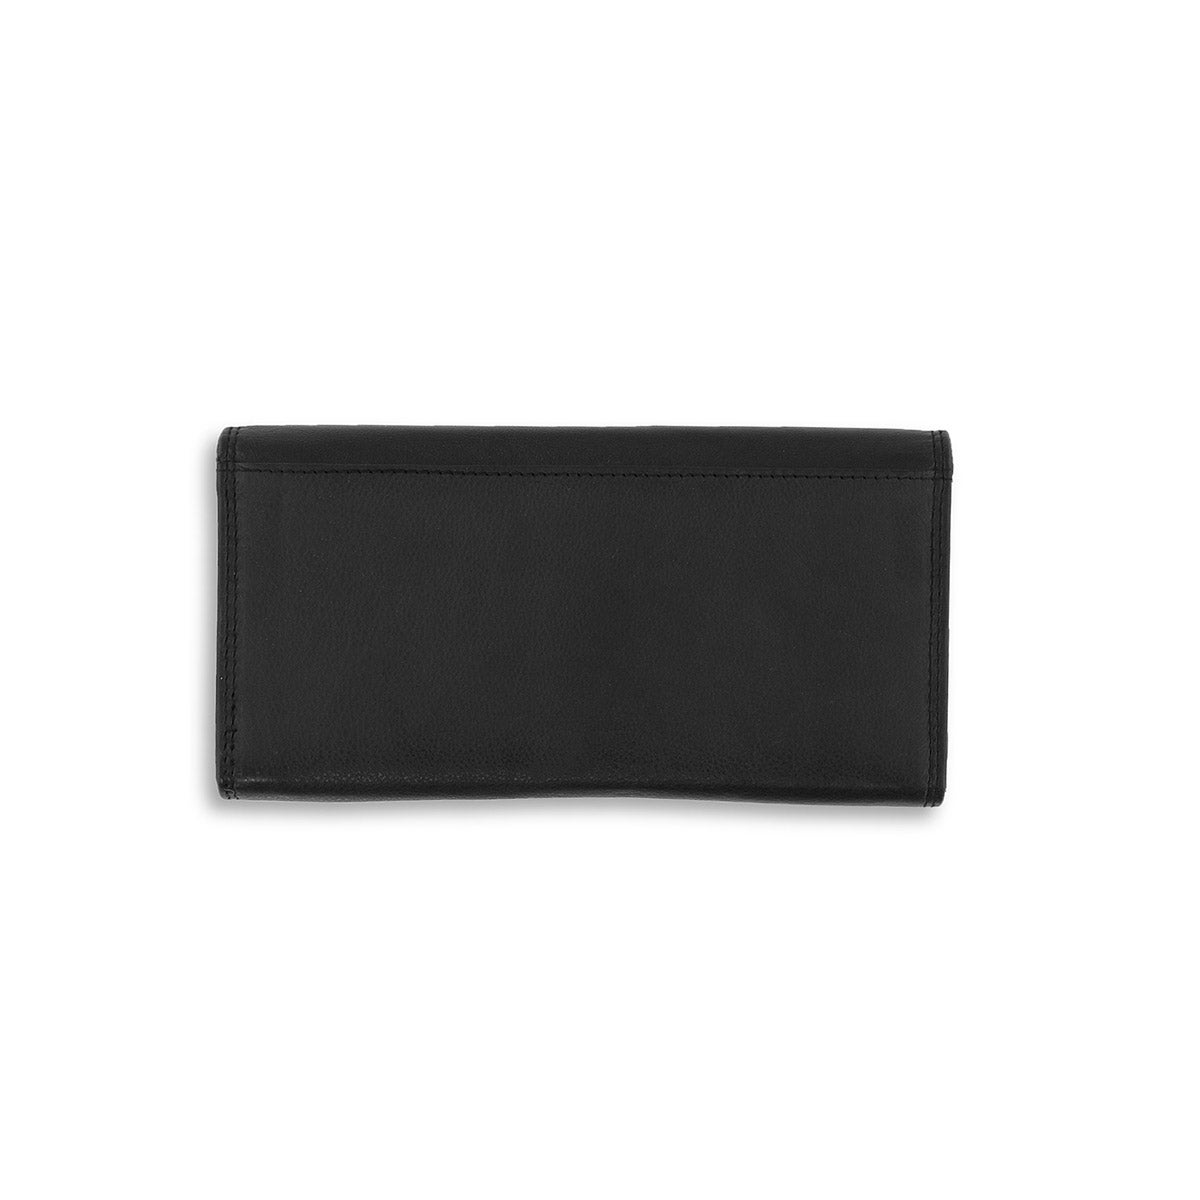 Lds black leather RFID wallet